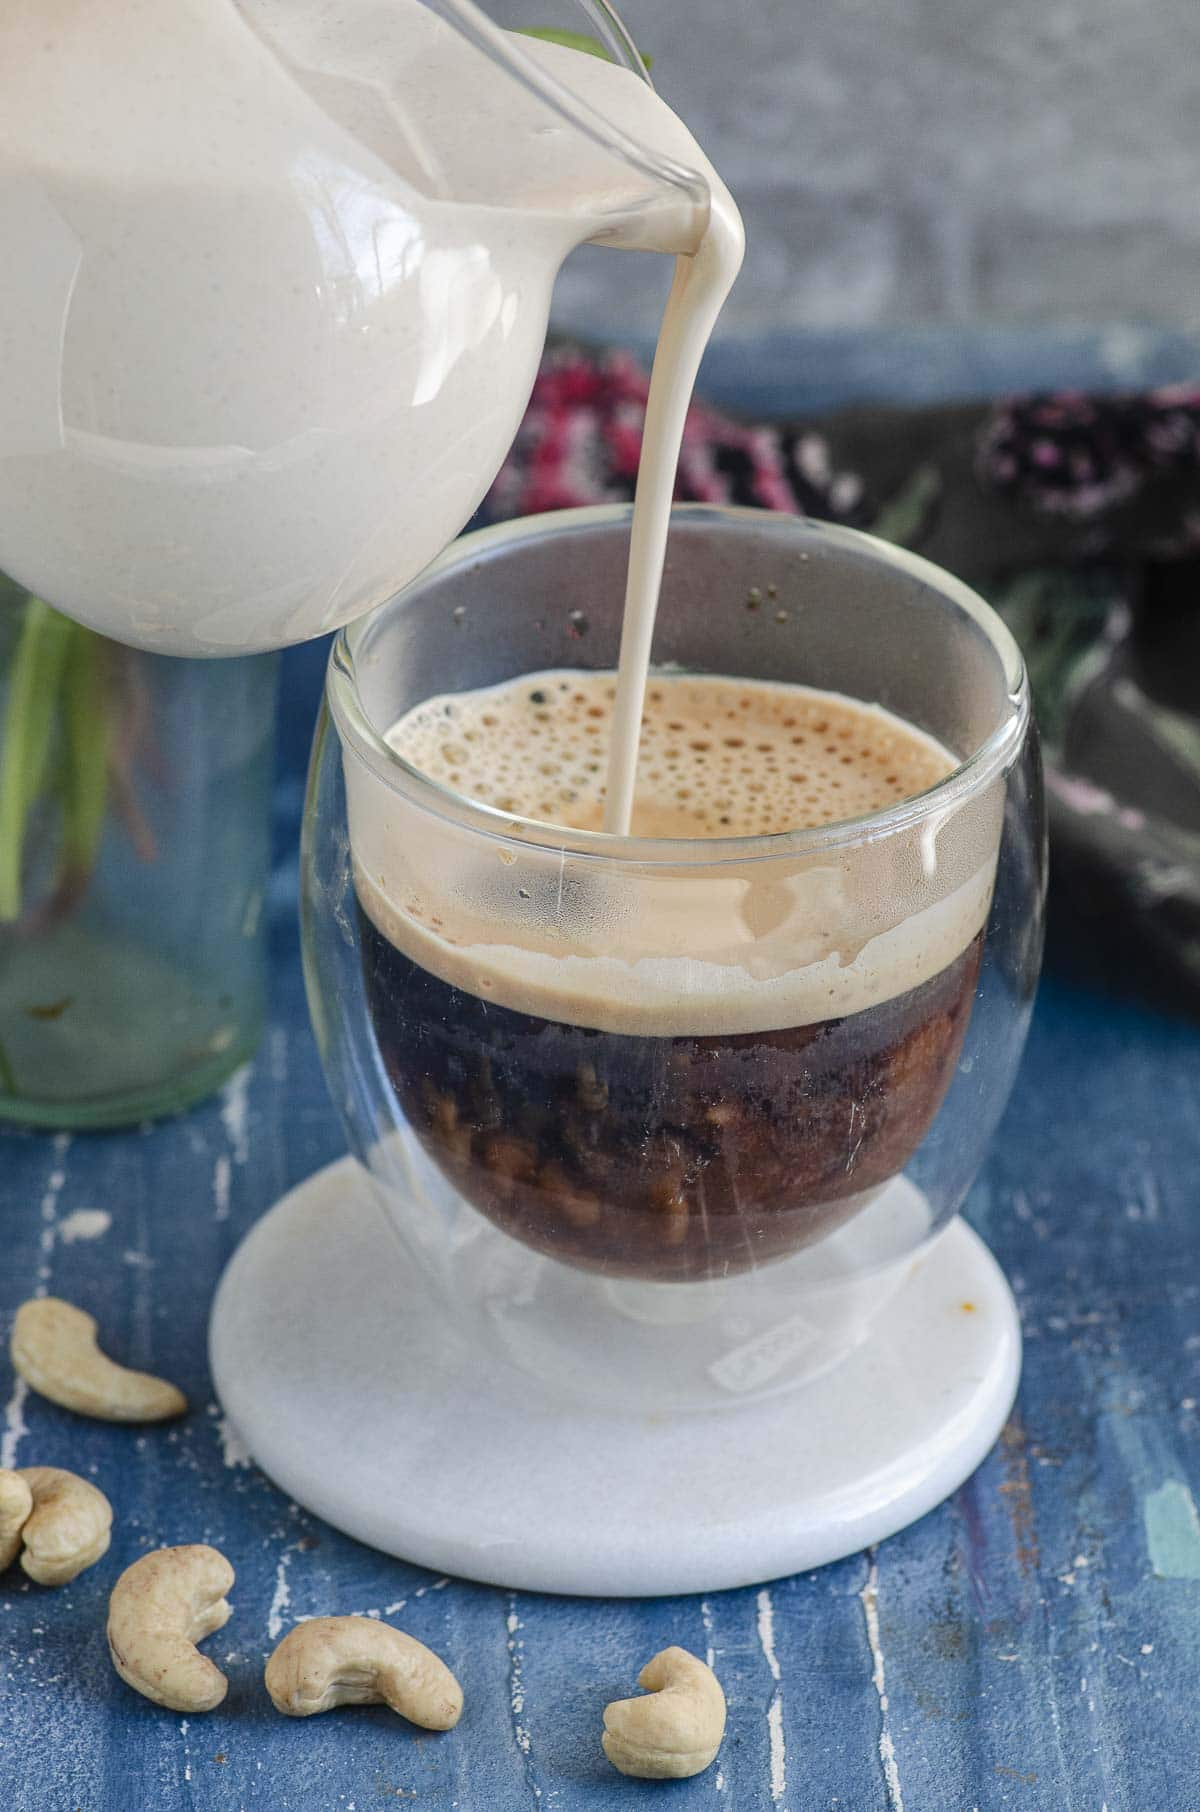 Pouring homemade cashew cream coffee creamer on a cup of coffee